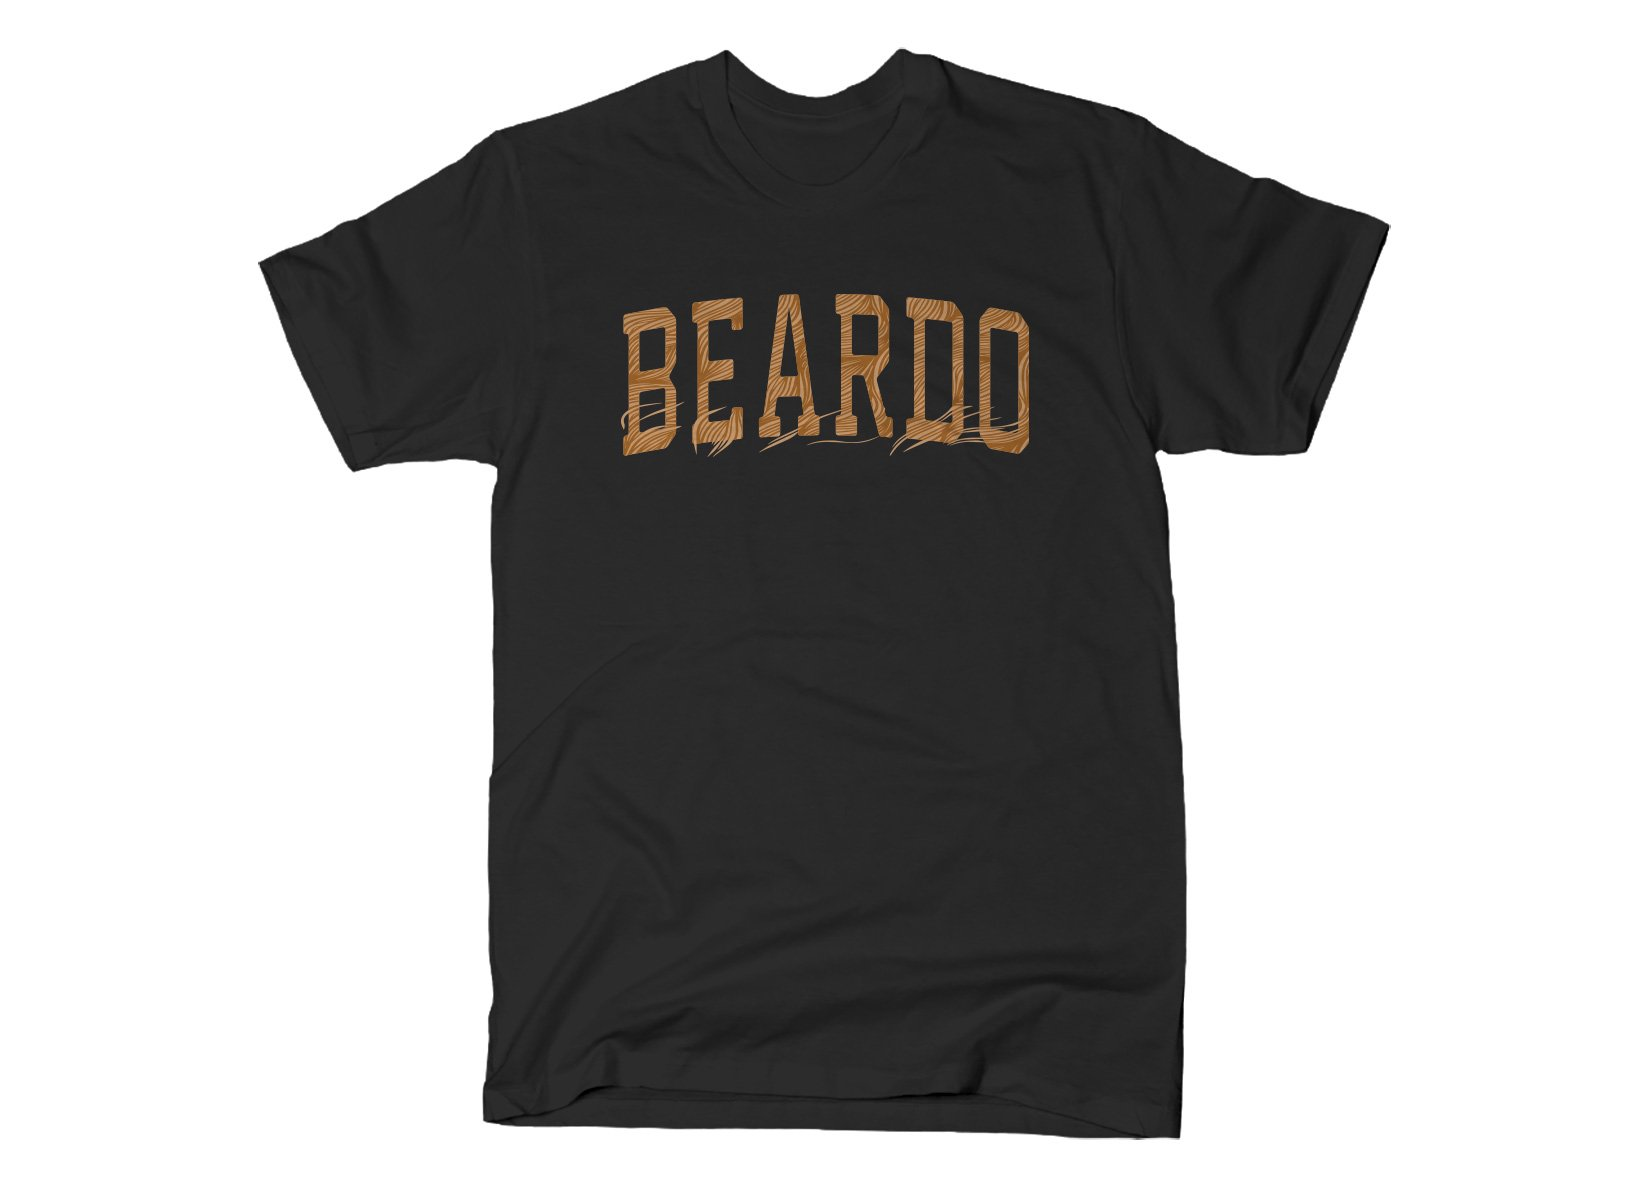 Beardo on Mens T-Shirt